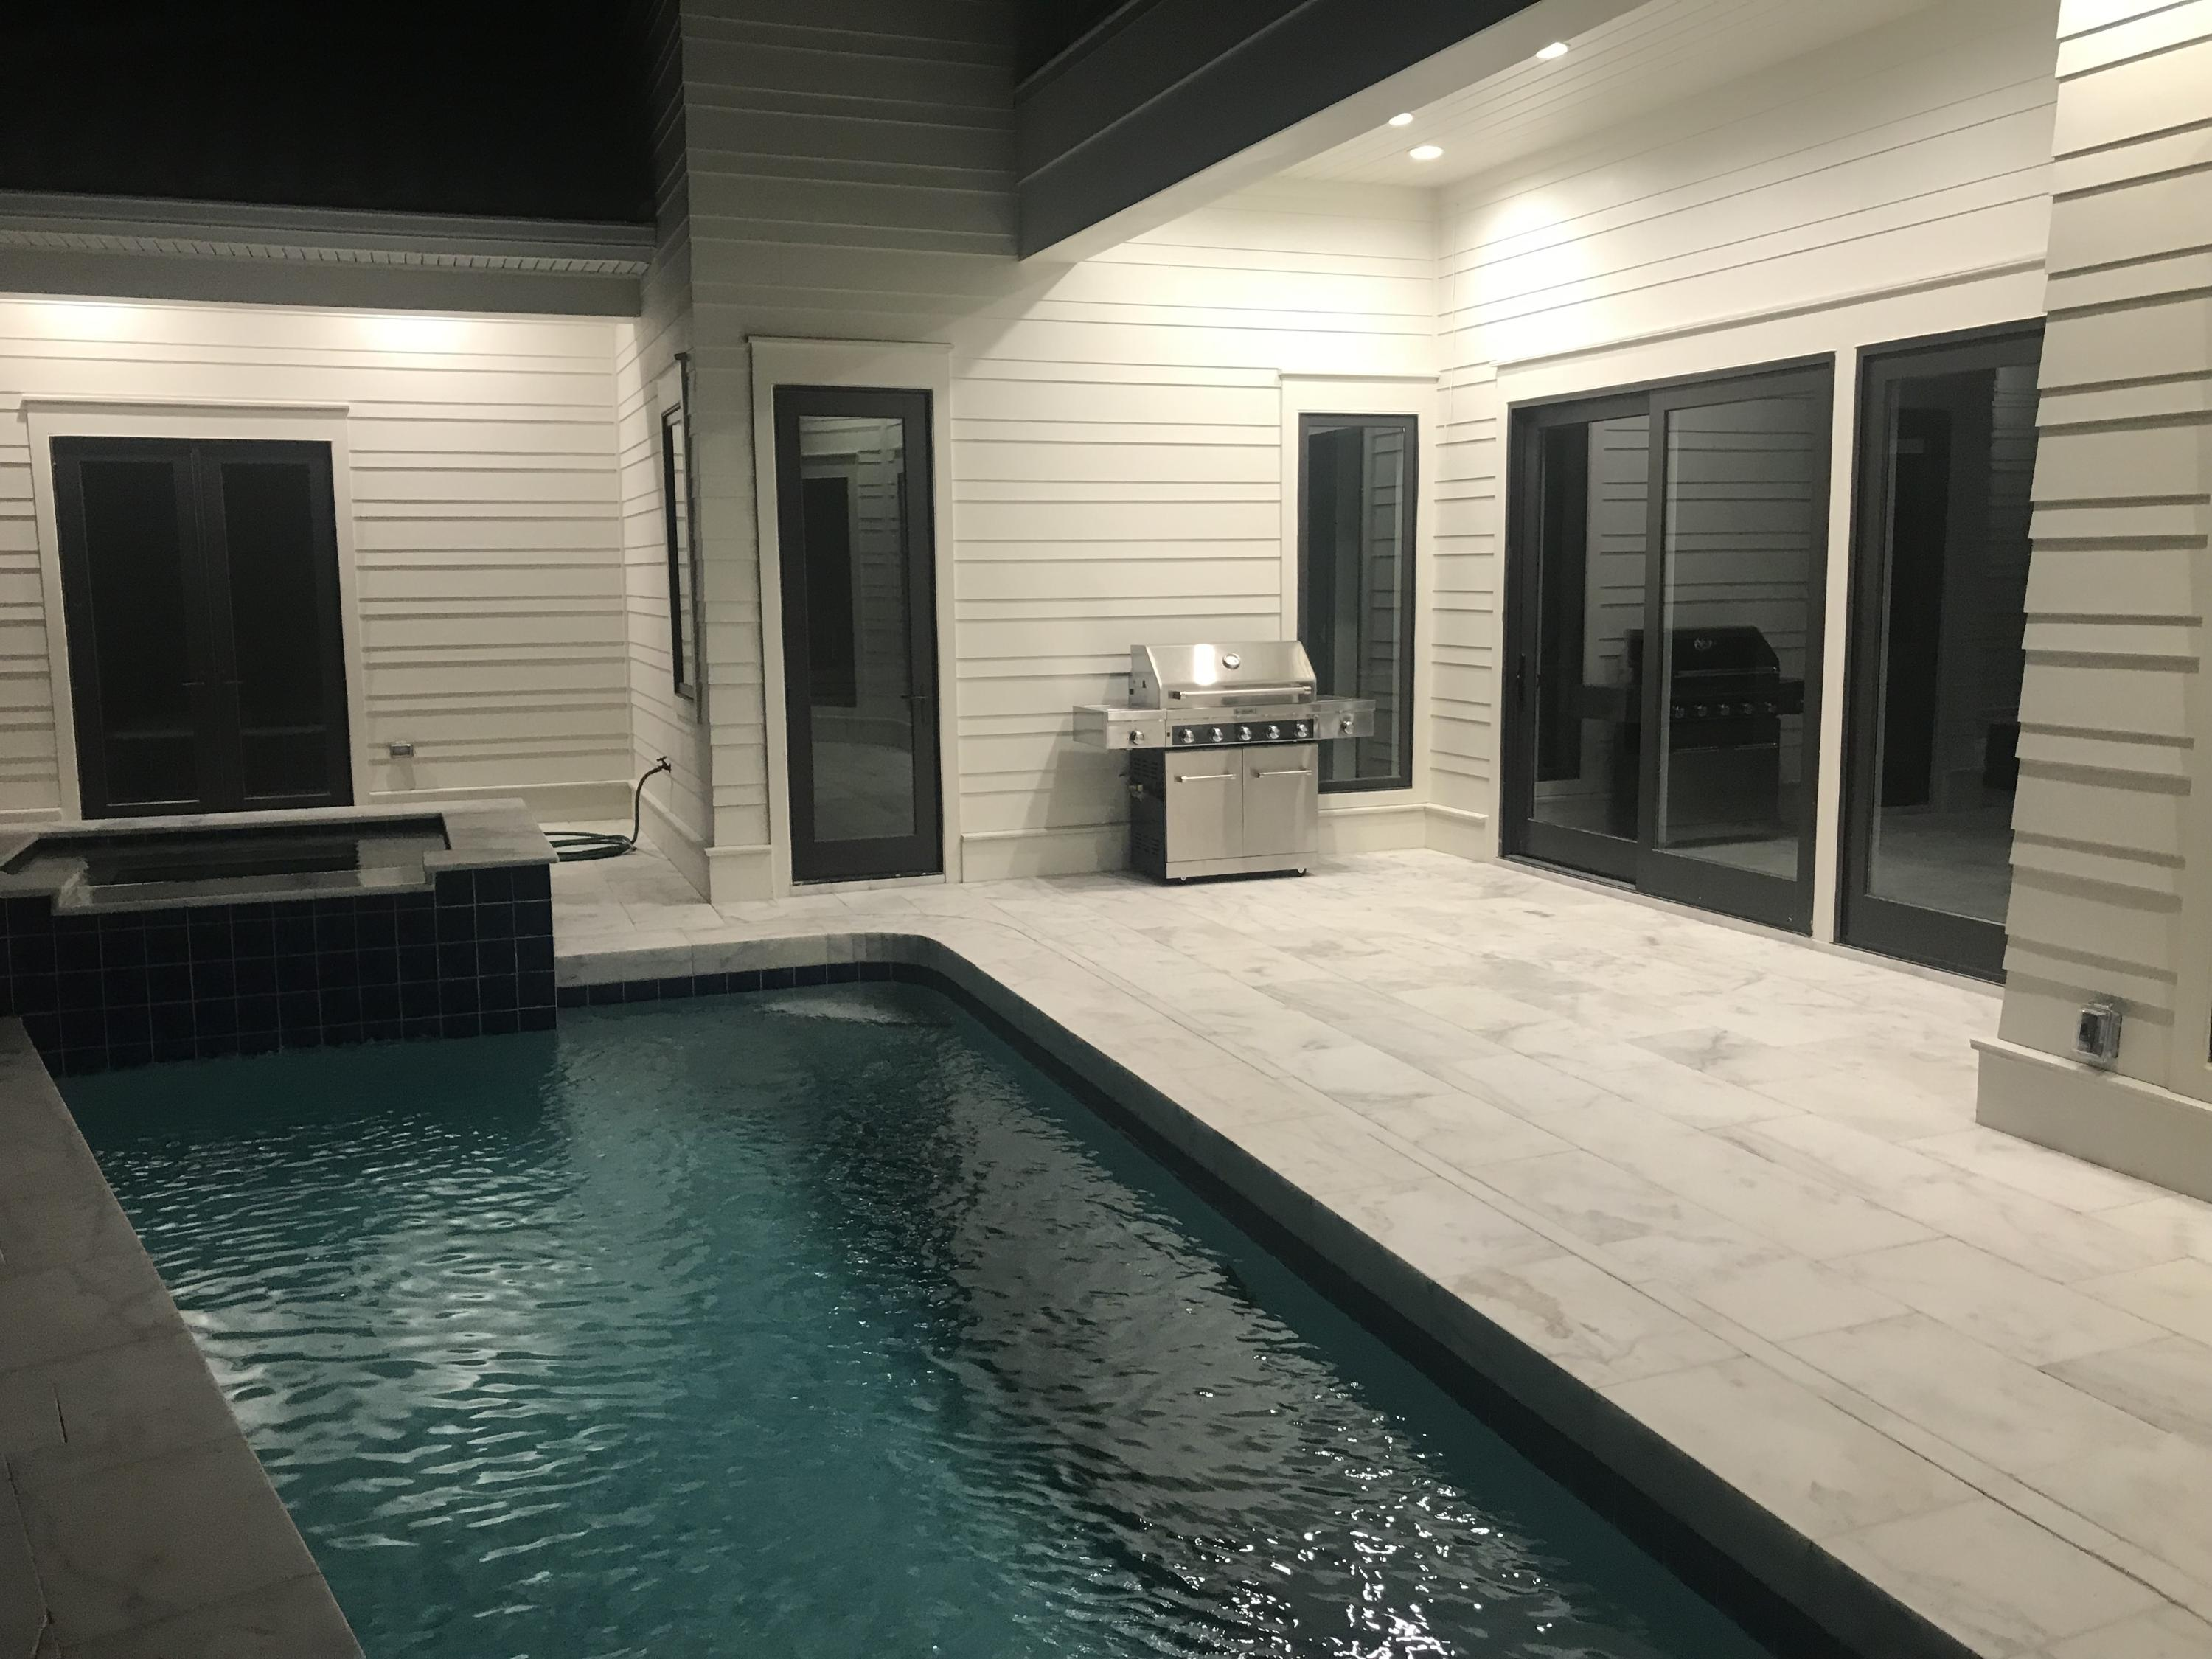 1807 Driftwood Point,Santa Rosa Beach,Florida 32459,3 Bedrooms Bedrooms,3 BathroomsBathrooms,Detached single family,Driftwood Point,20131126143817002353000000